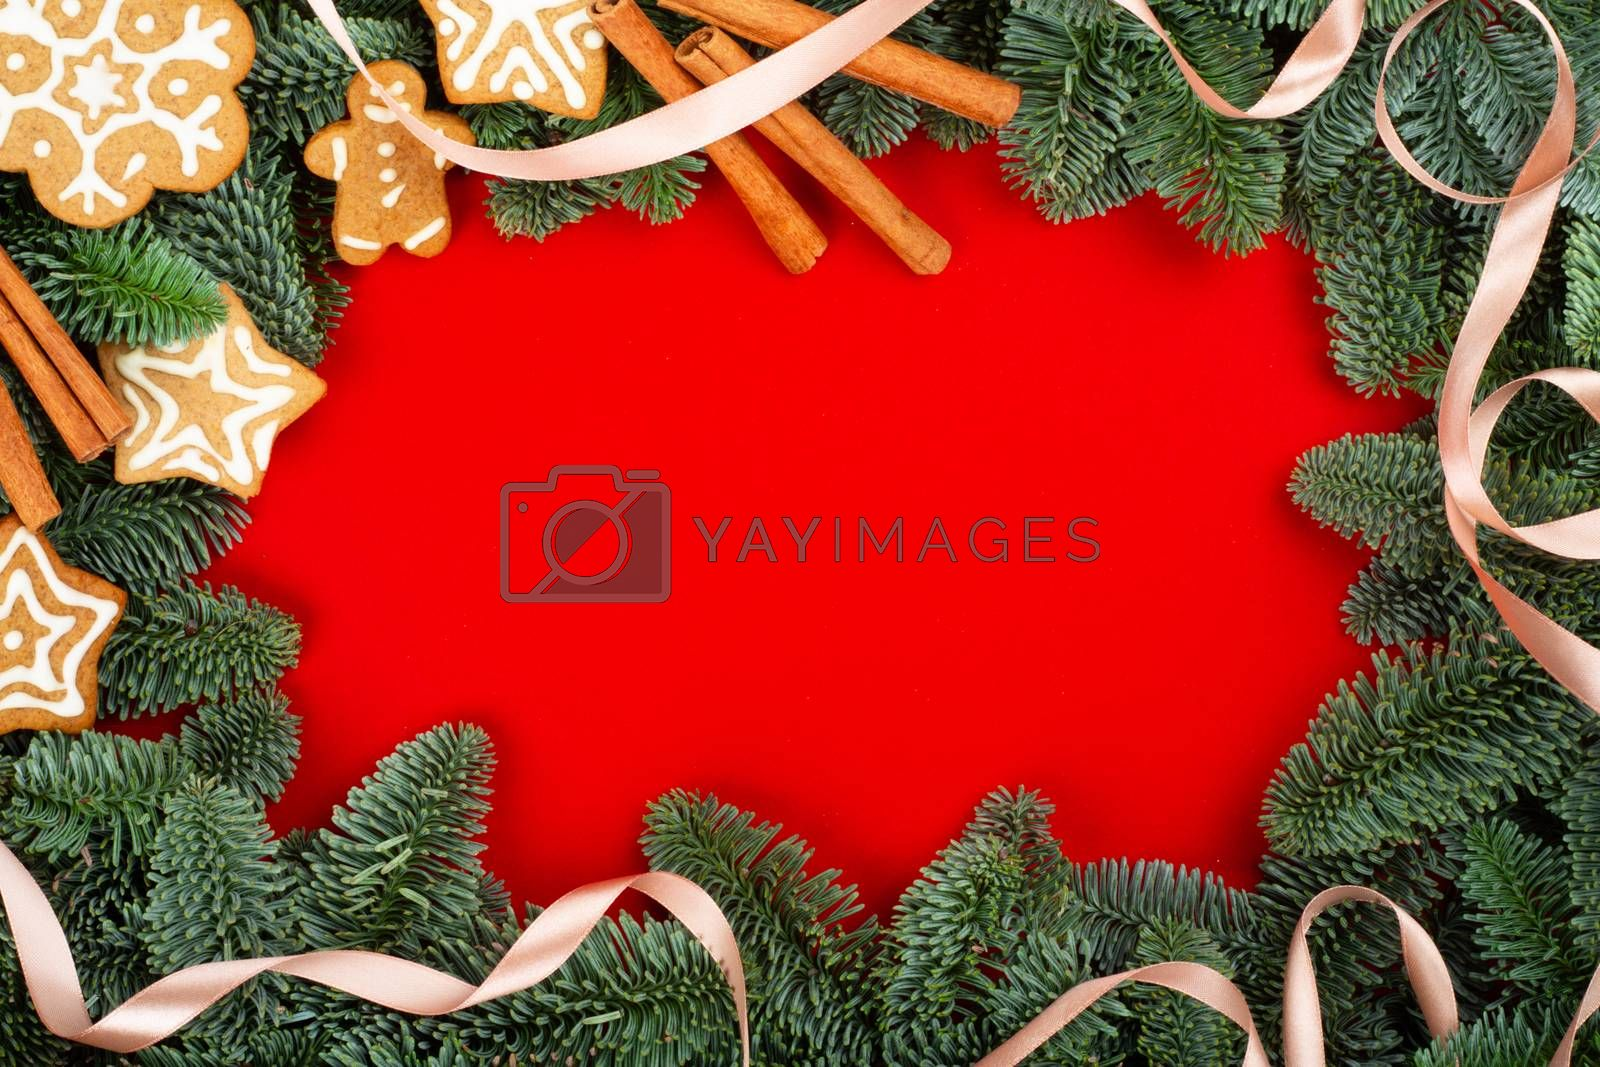 Christmas fir tree branches and food decor border frame on red background with copy space for text